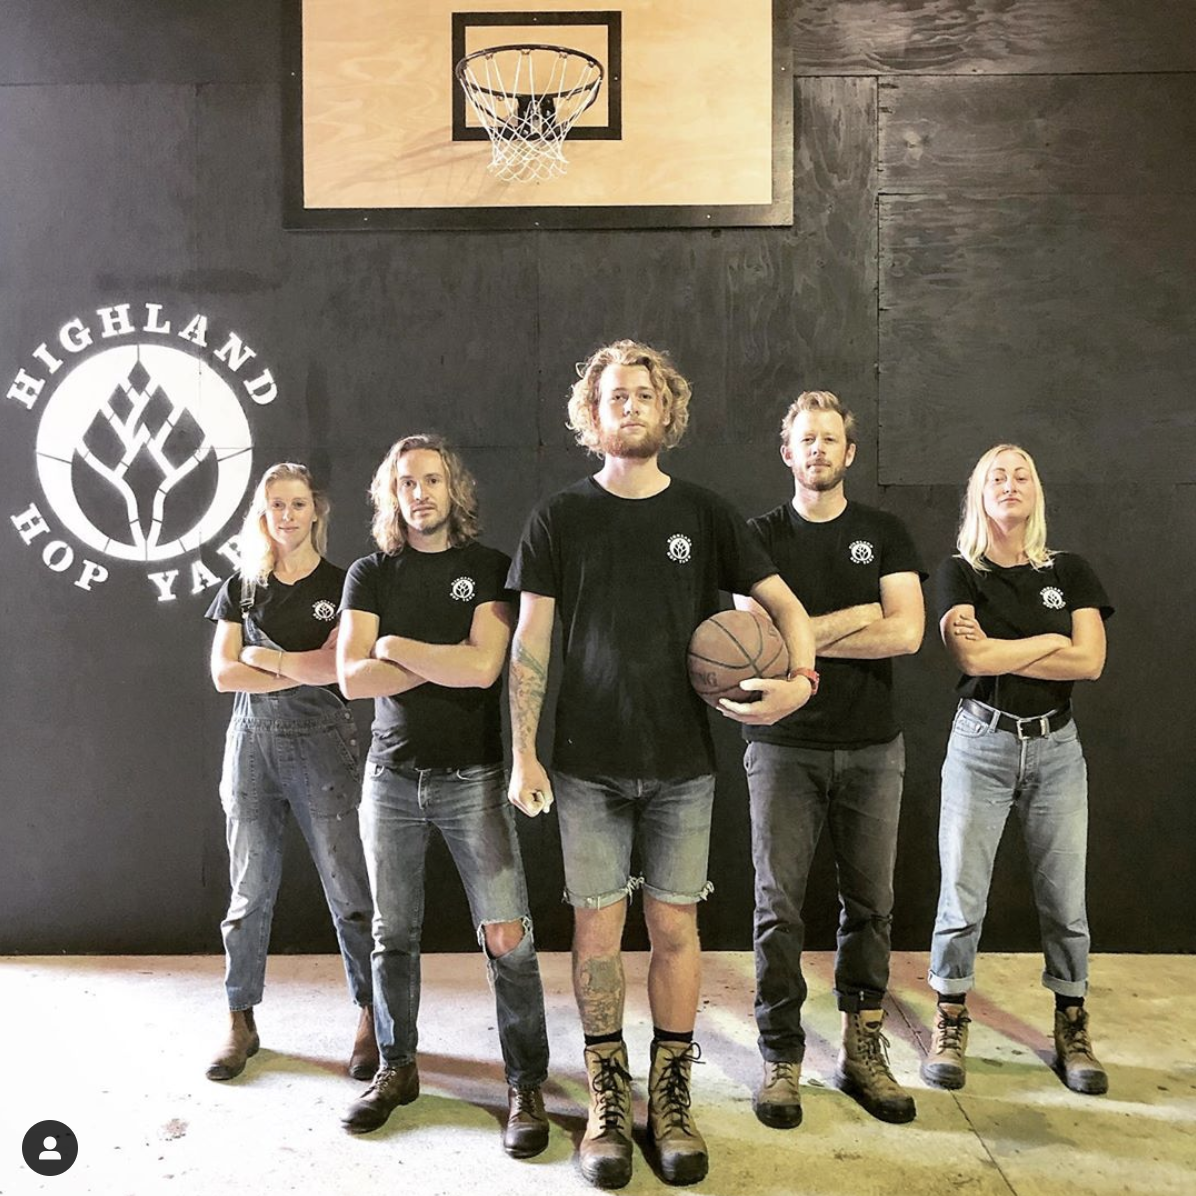 Left to Right: Margaret Curtis, Steve Ormsby, Sean Willcock, Will Dempster & Elise Ekvall C. 2019